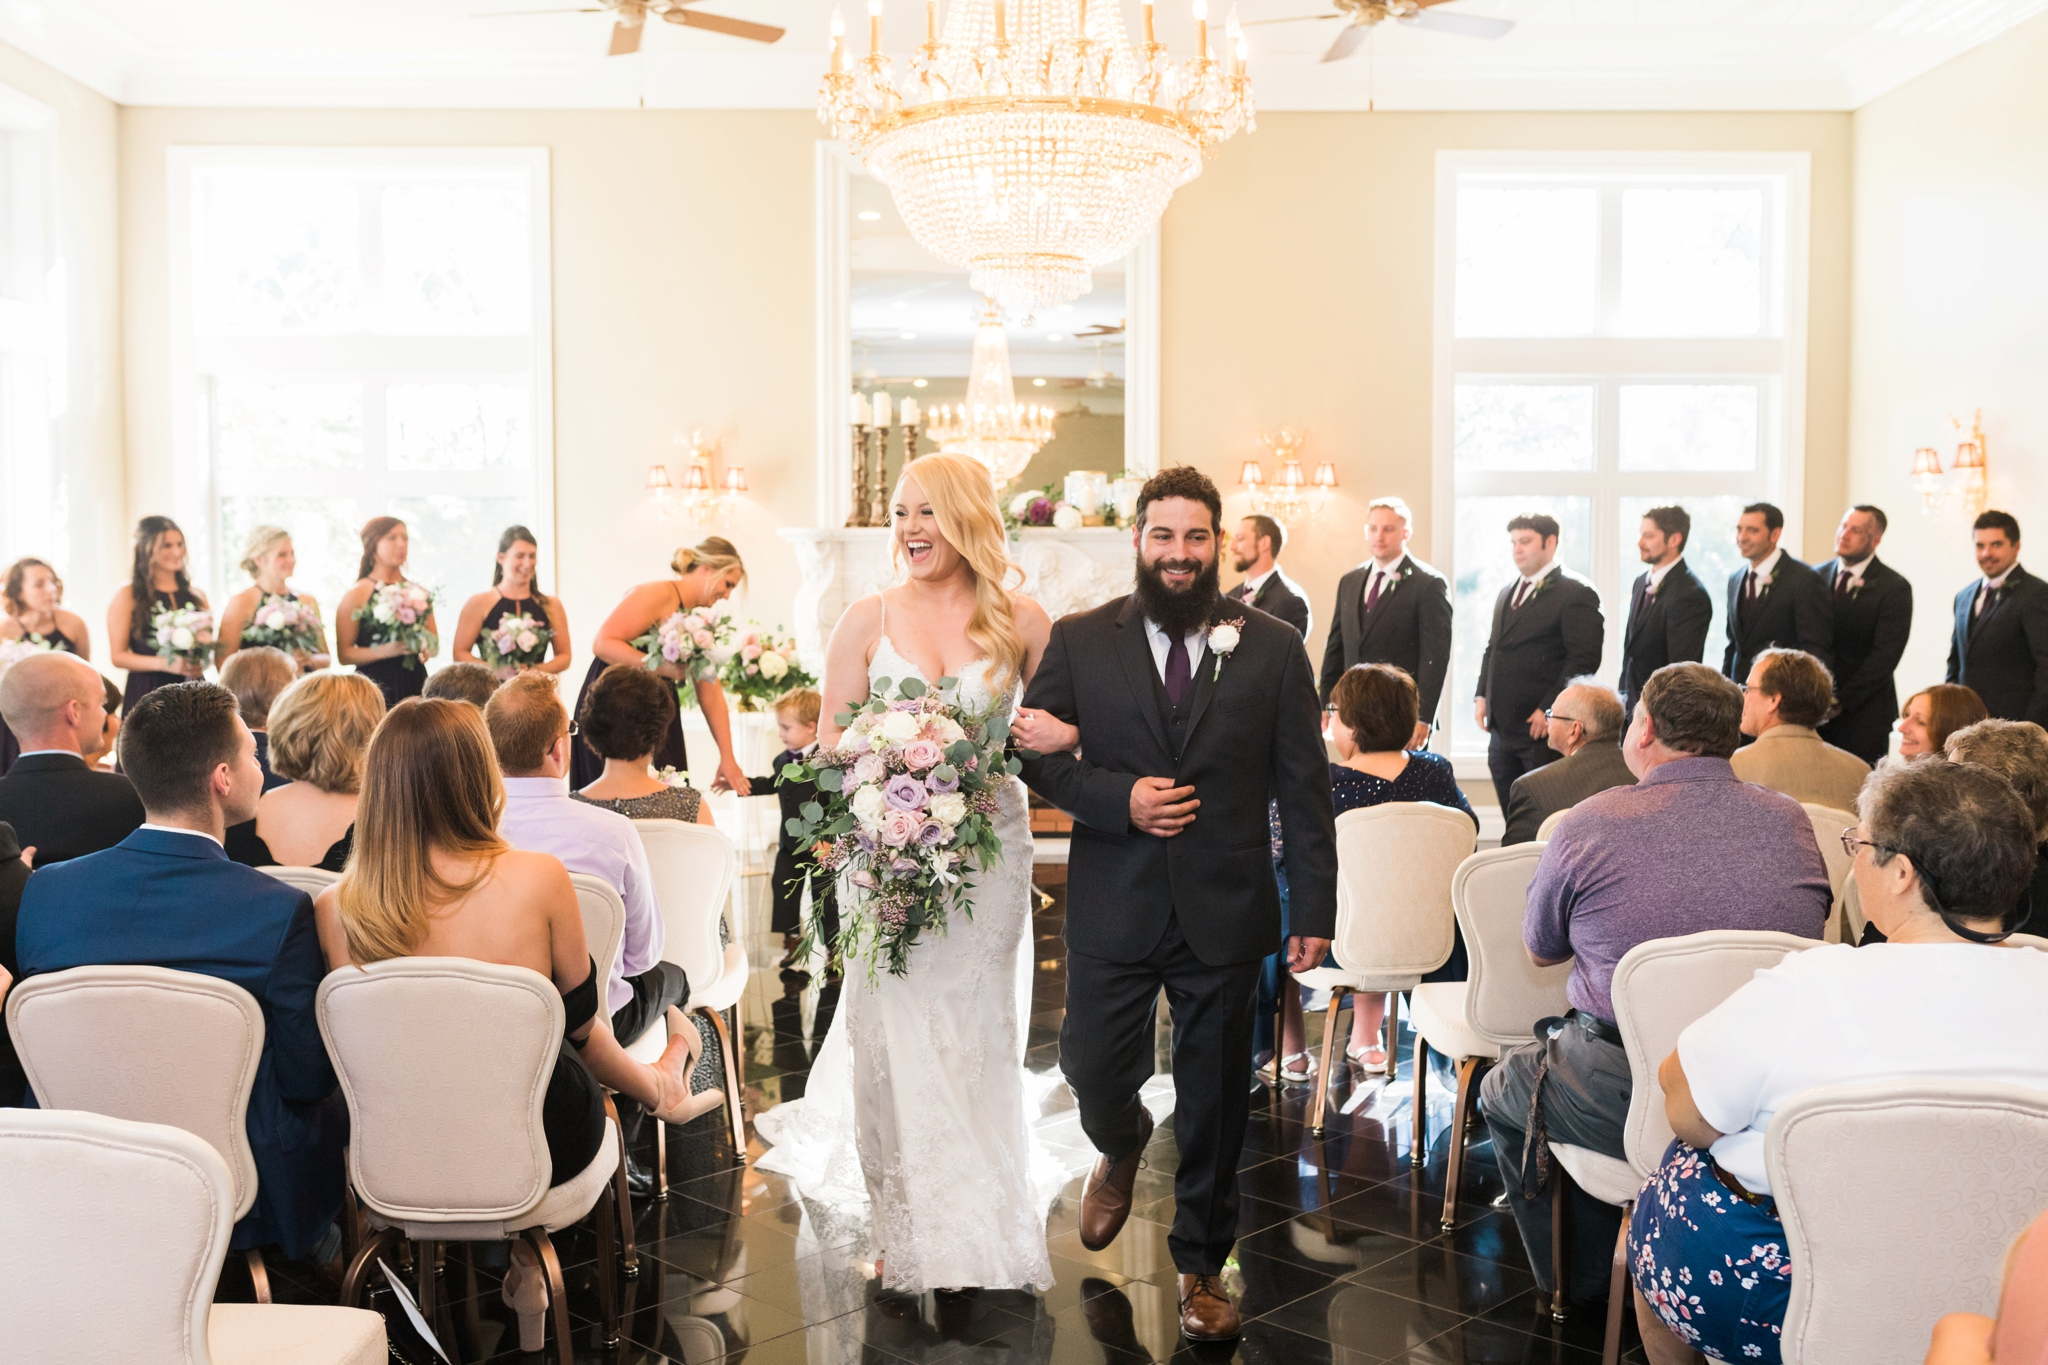 Emily Grace Photography, Mount Joy PA Wedding Photographer, Cameron Estate Inn Wedding